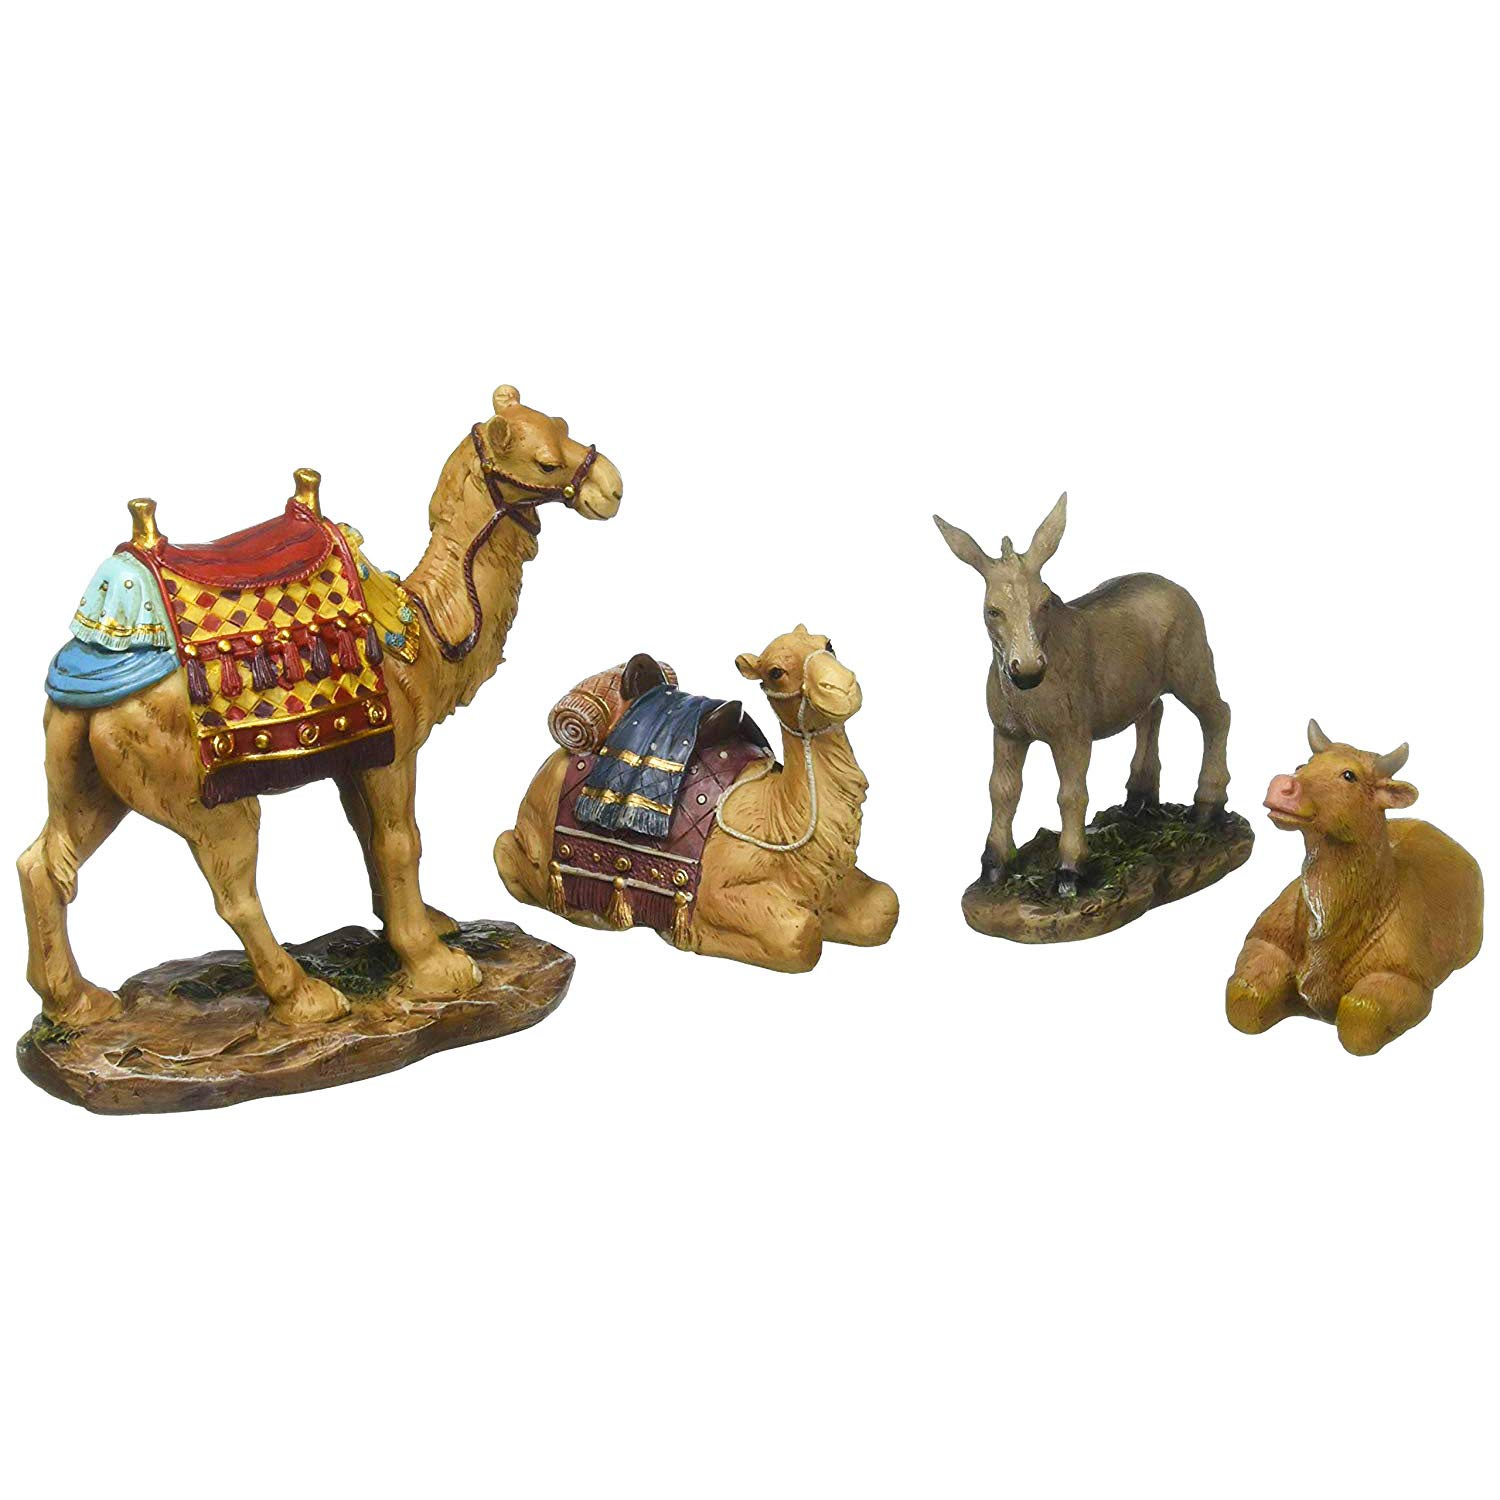 Christmas Nativity Animals Set for 10 inch Nativity by Three Kings Gifts